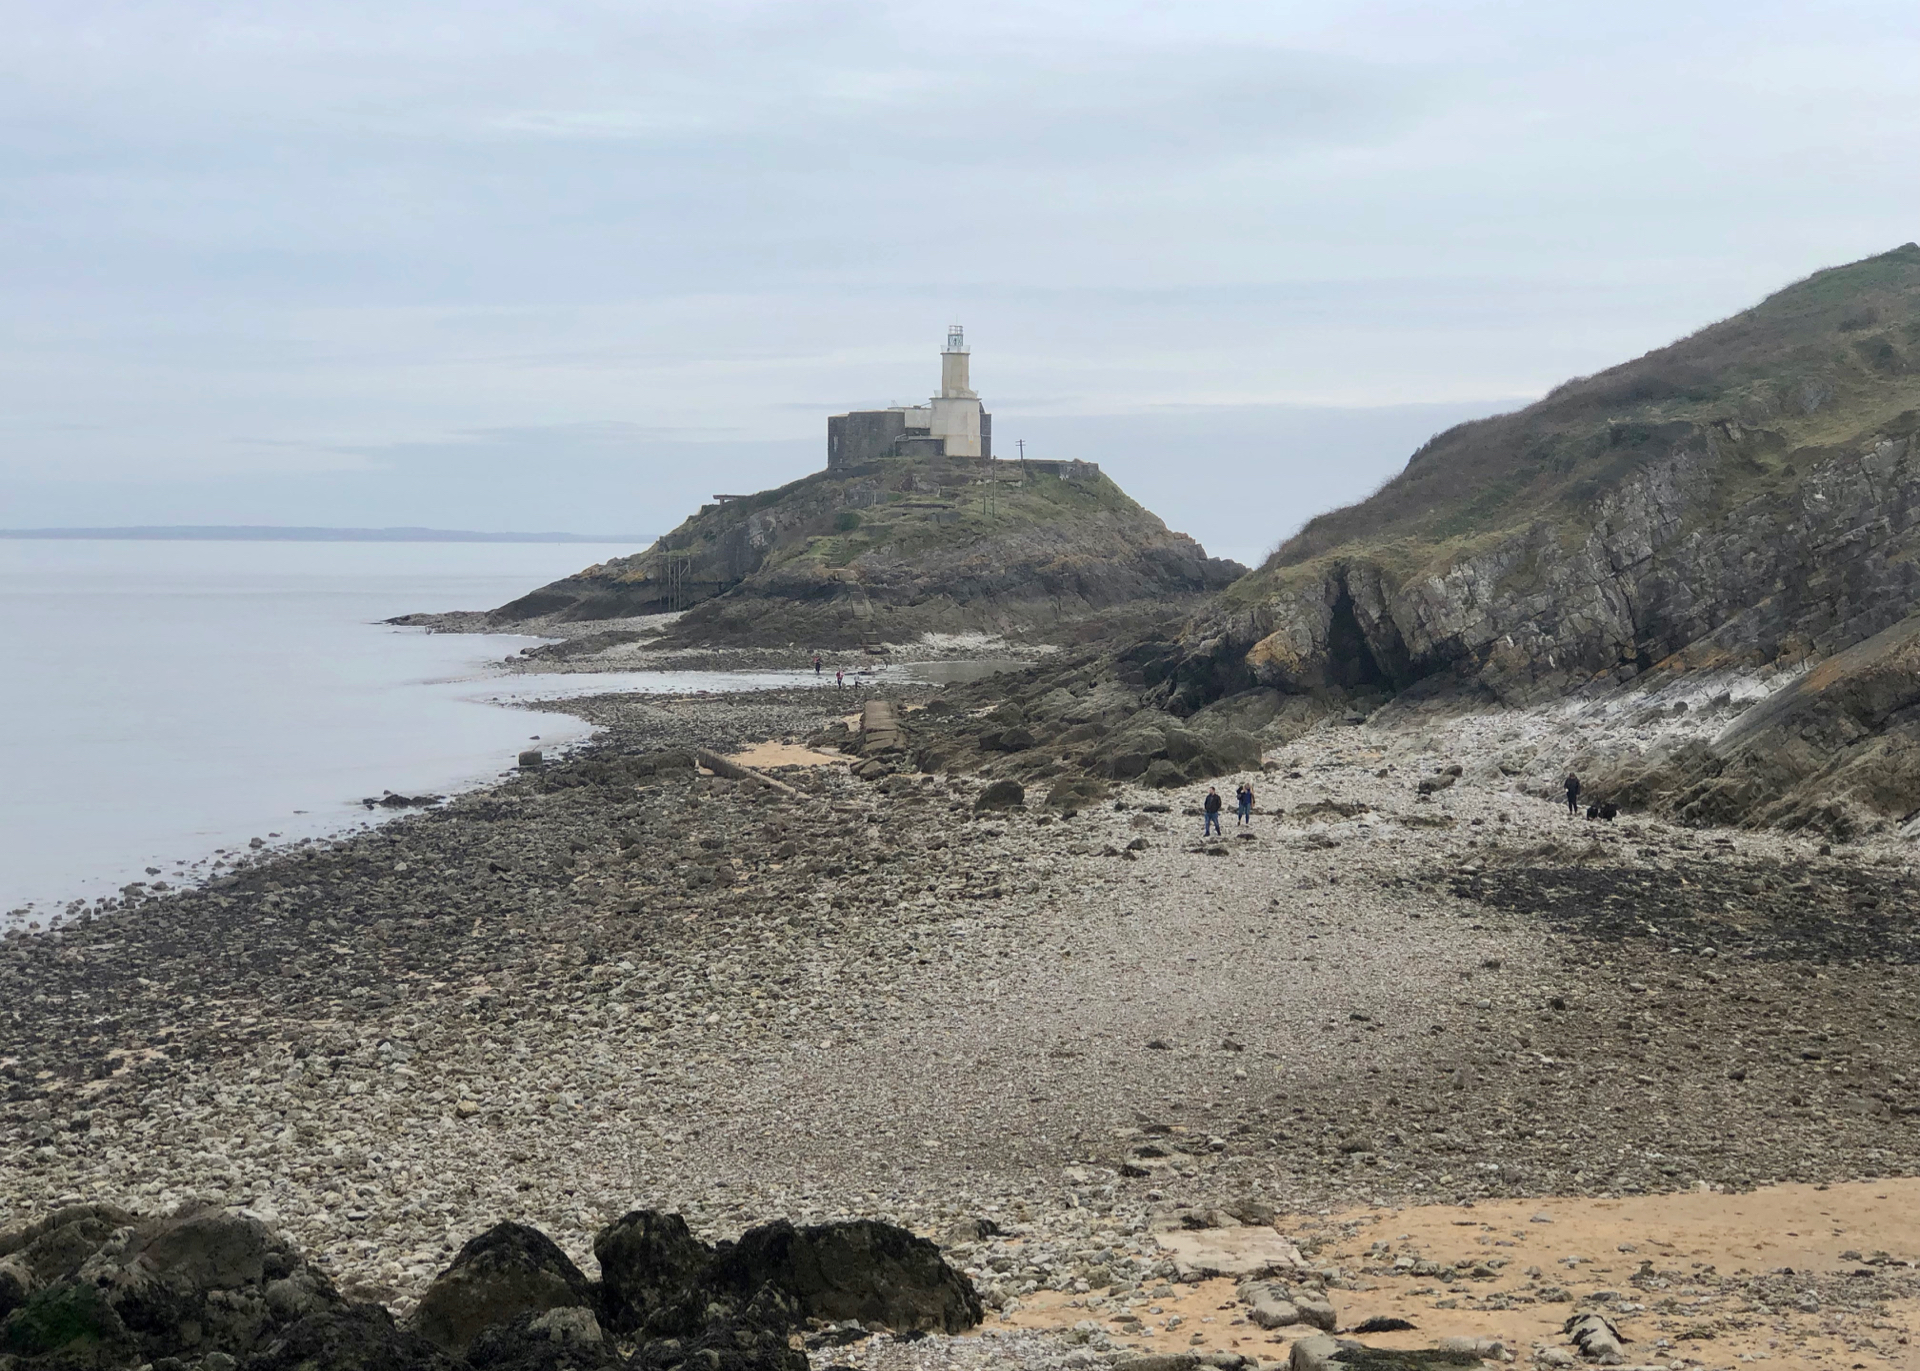 Mumbles Lighthouse, completed in 1794, sits on the outer of two islands off Mumbles Head, and is clearly visible from any point along the five mile sweep of Swansea Bay.